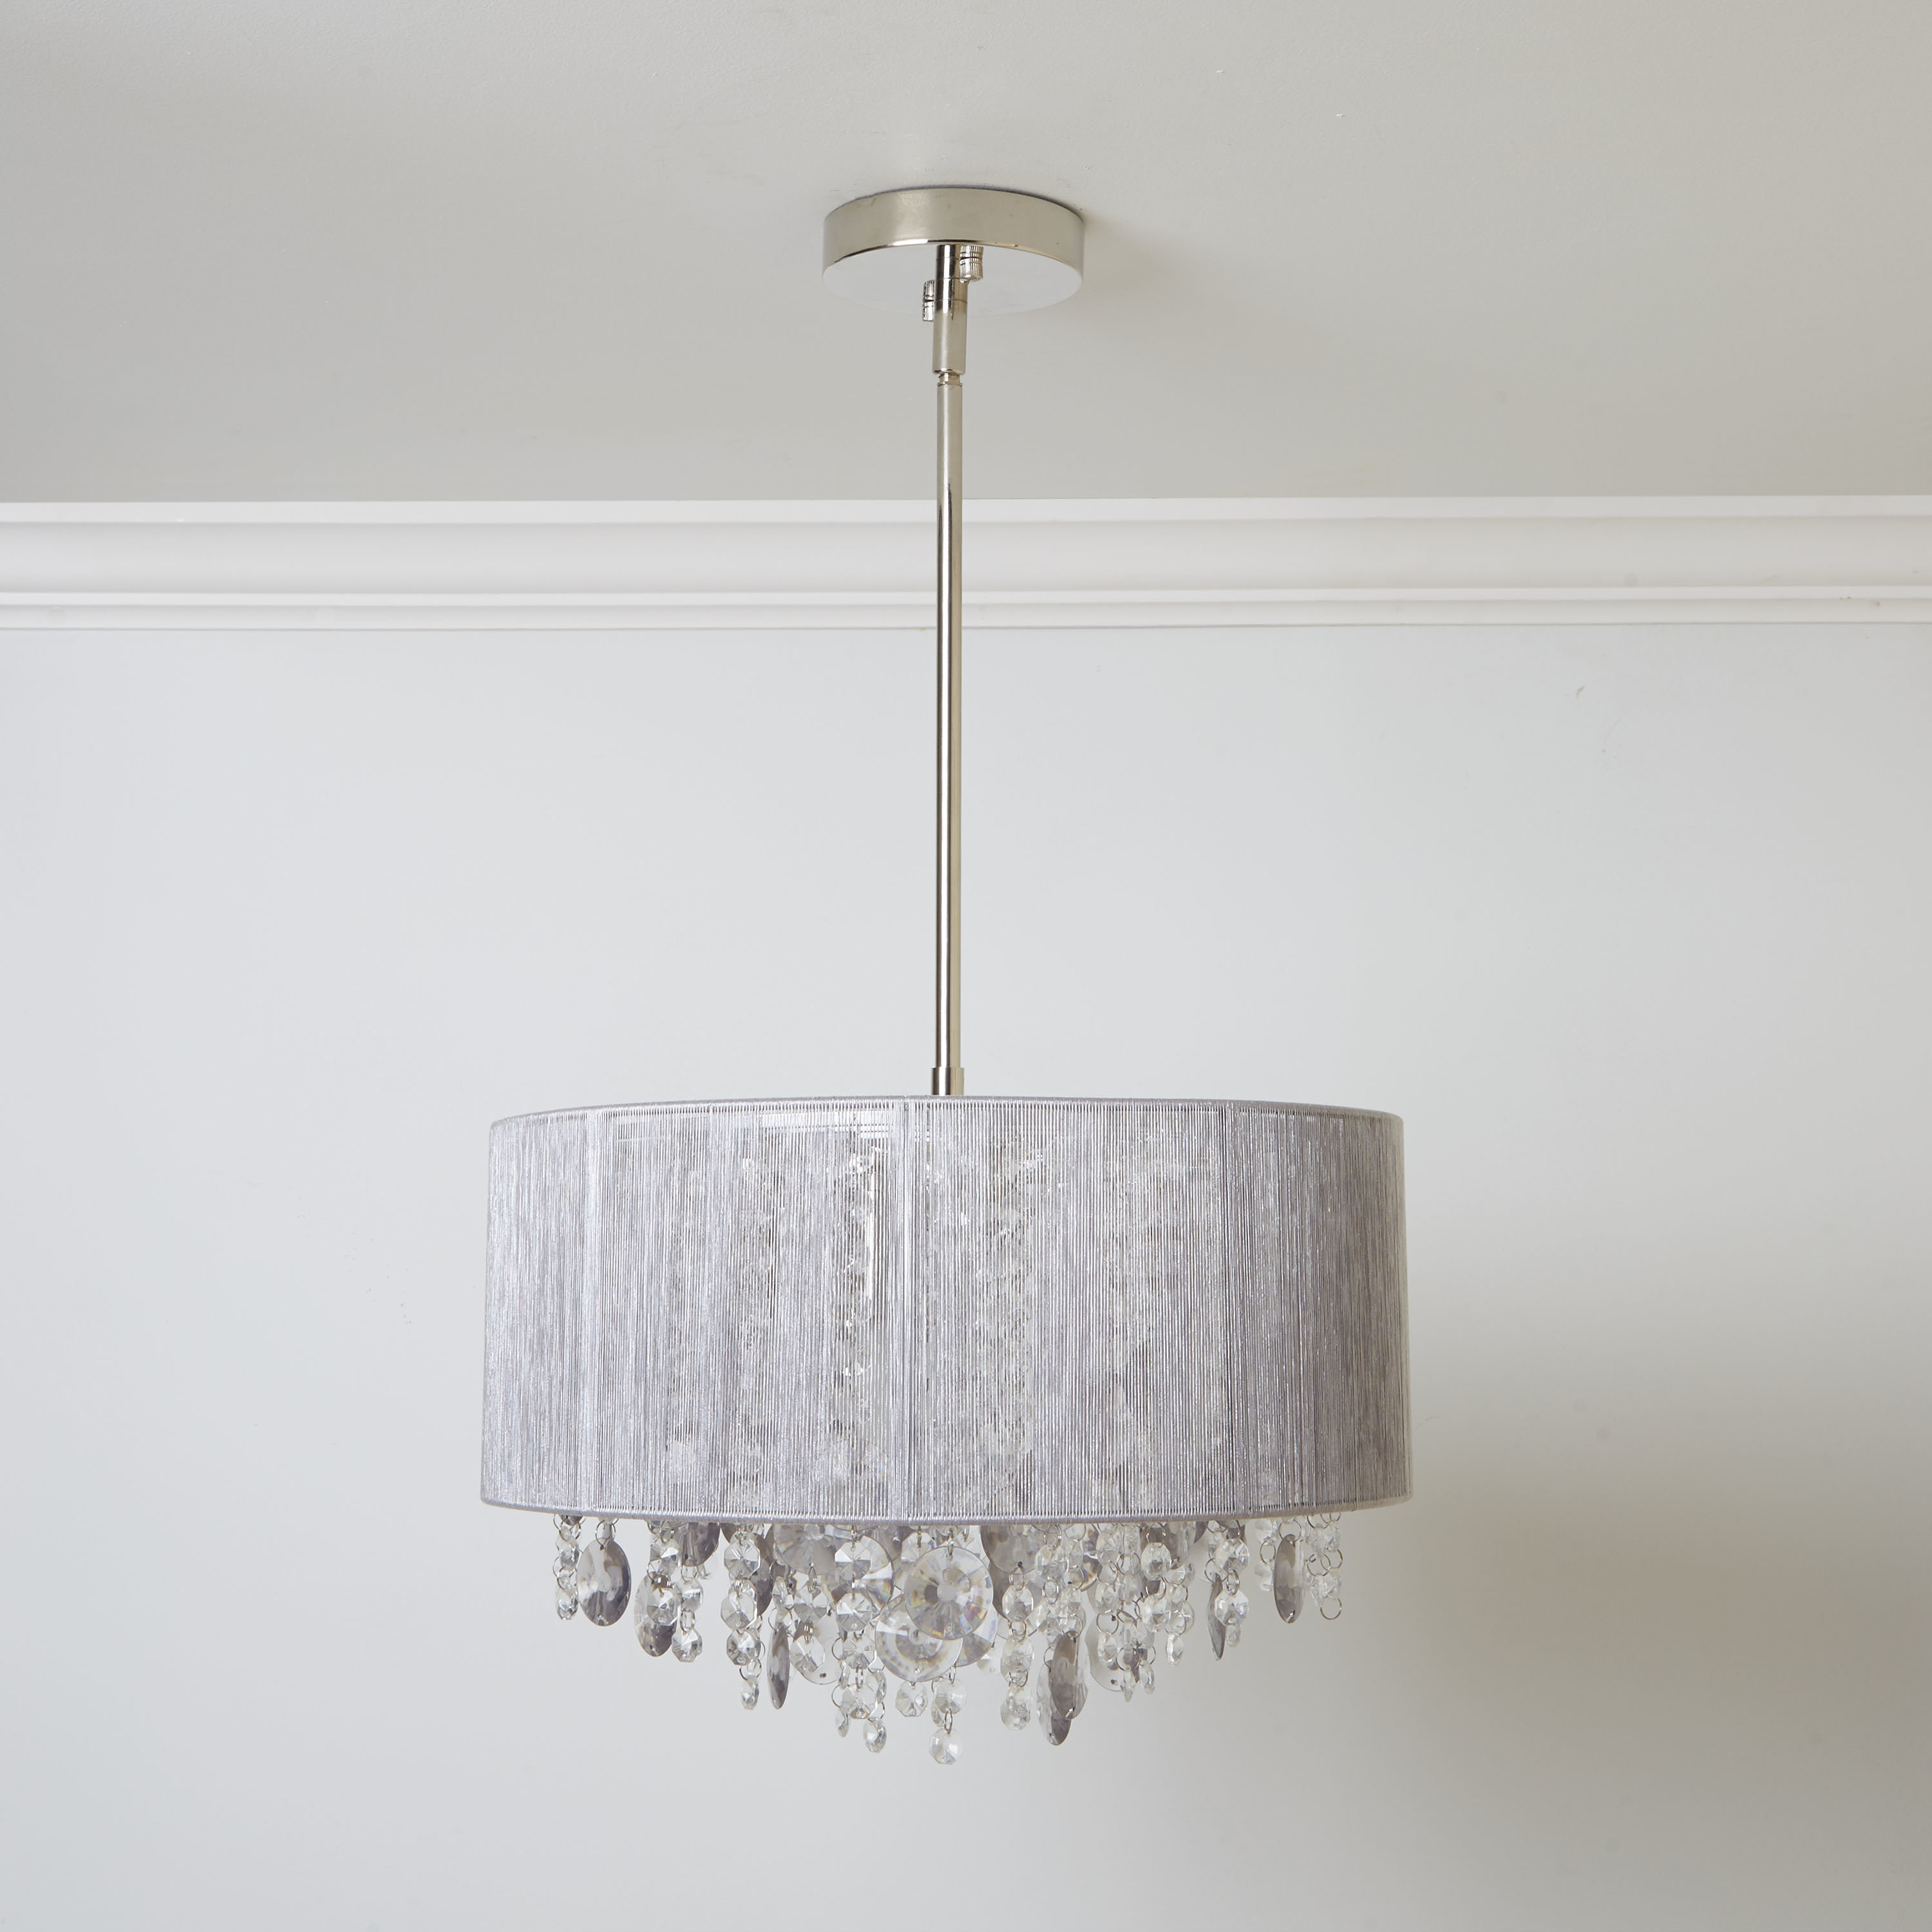 Wayfair Within Famous Willems 1 Light Single Drum Pendants (Gallery 4 of 20)